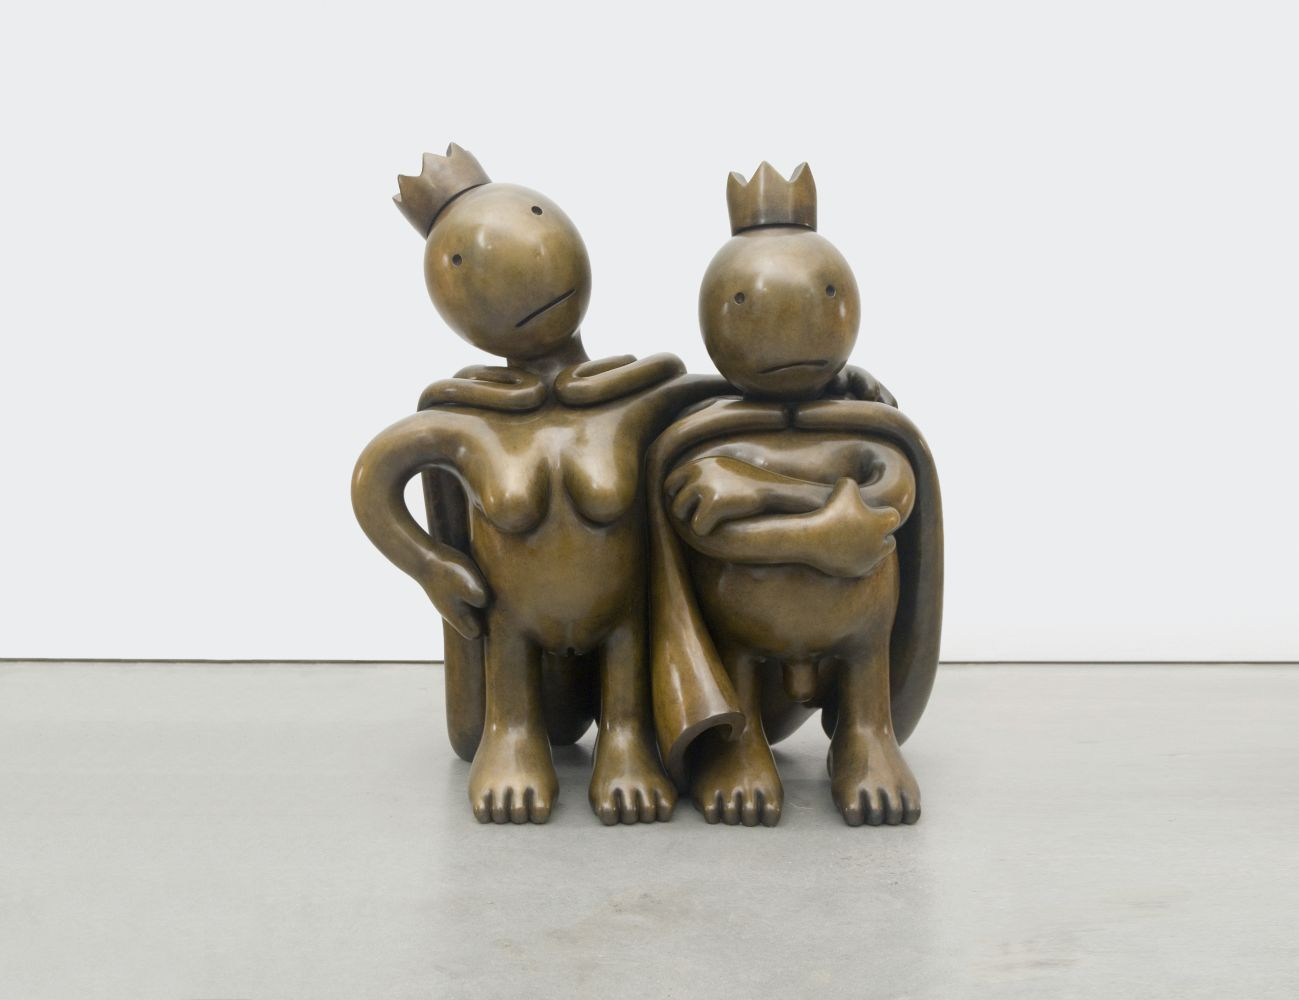 Two nude bronze figures with capes and crowns by Tom Otterness.